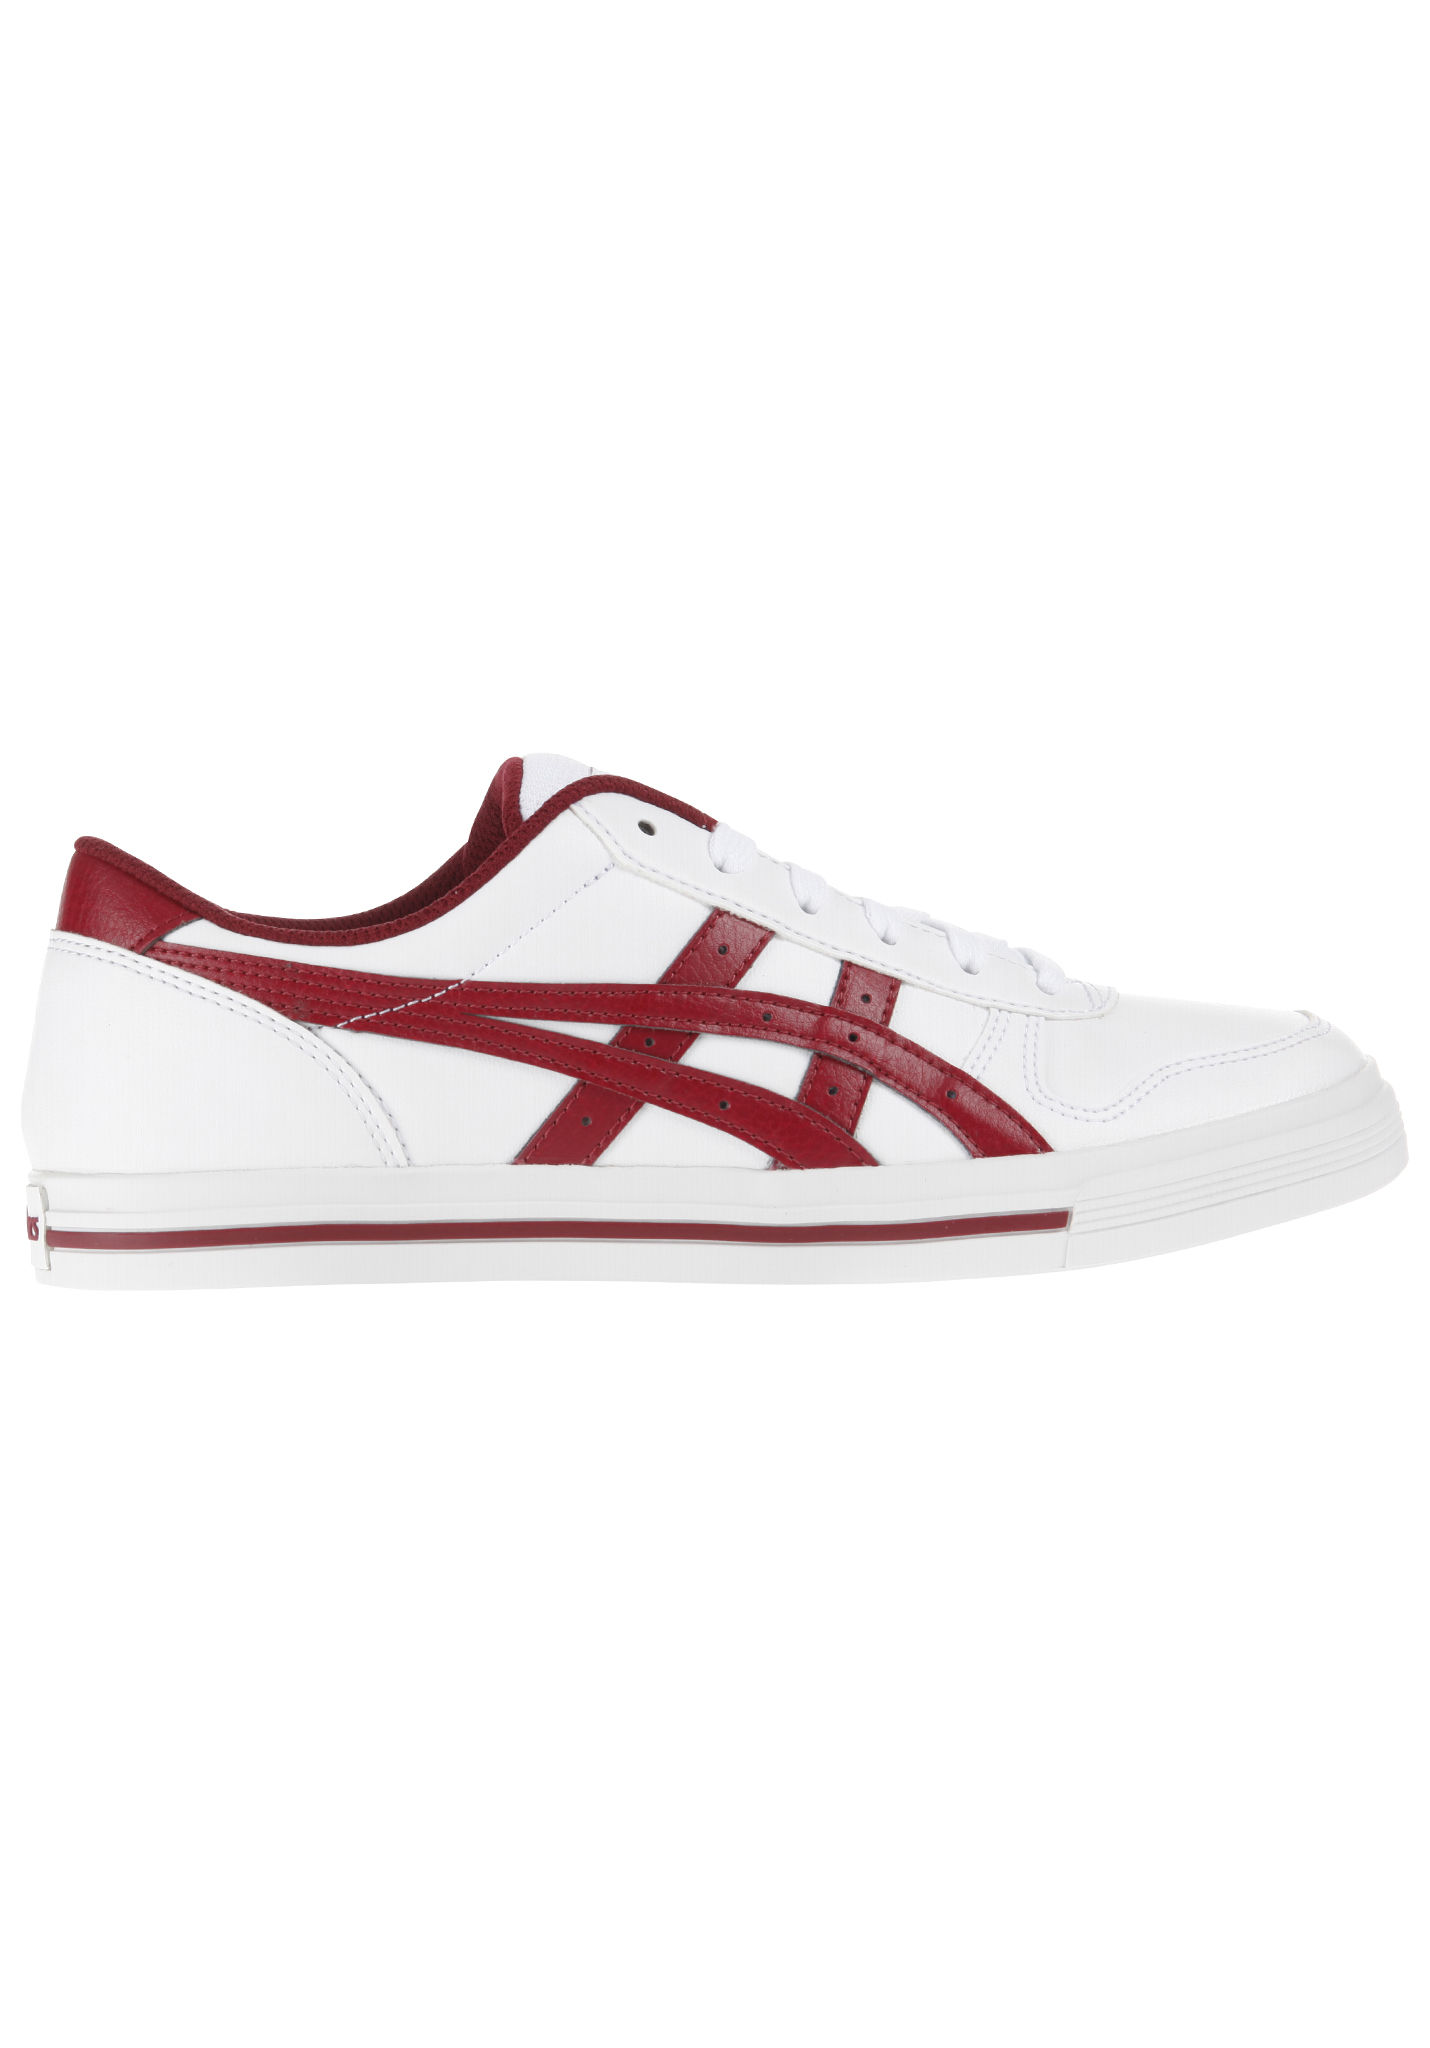 ec100e2b759 Asics Tiger Aaron - Sneakers voor Heren - Rood - Planet Sports